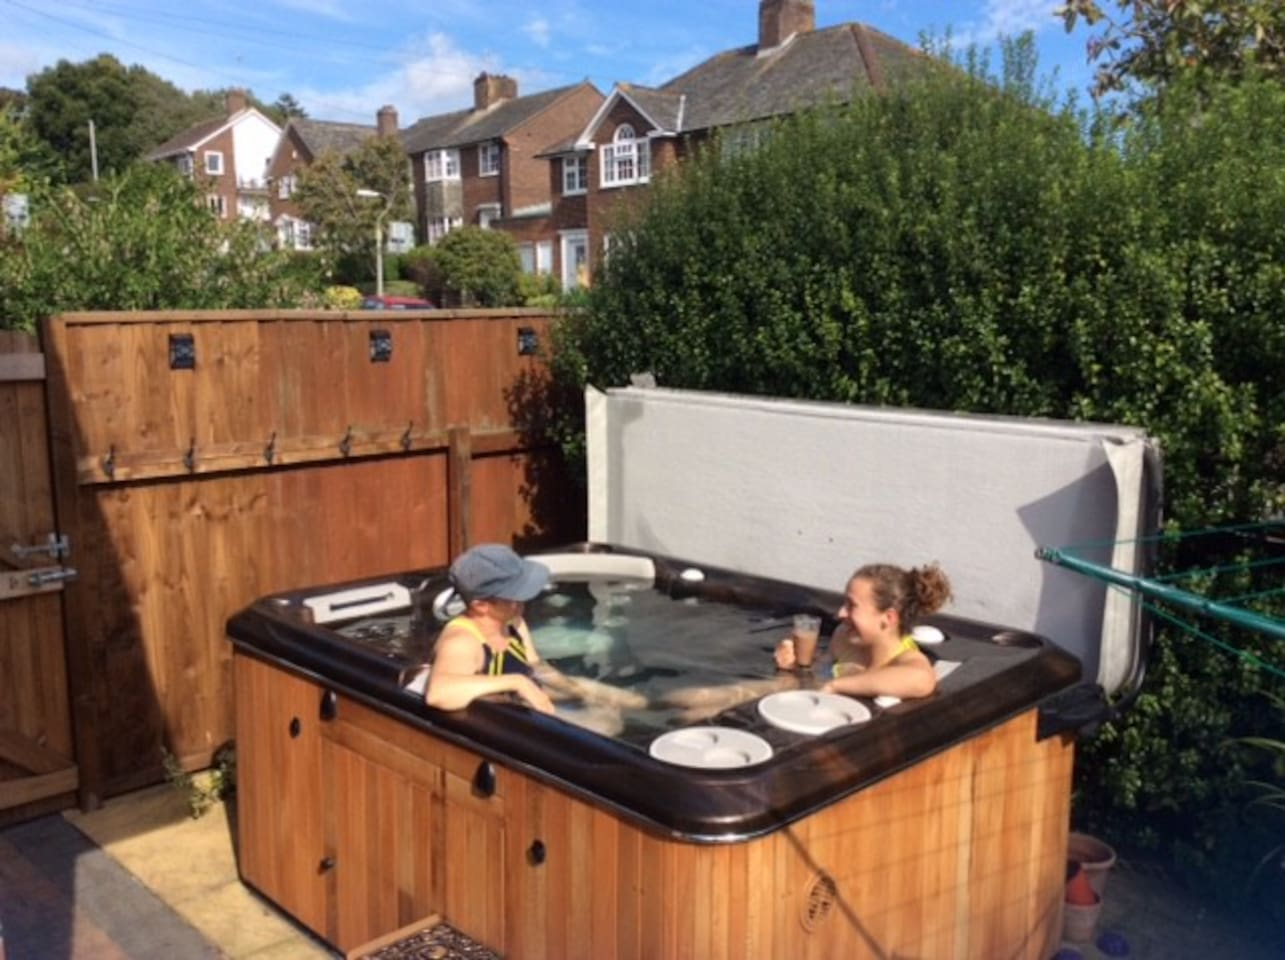 Hot tub in the garden at 38 d!